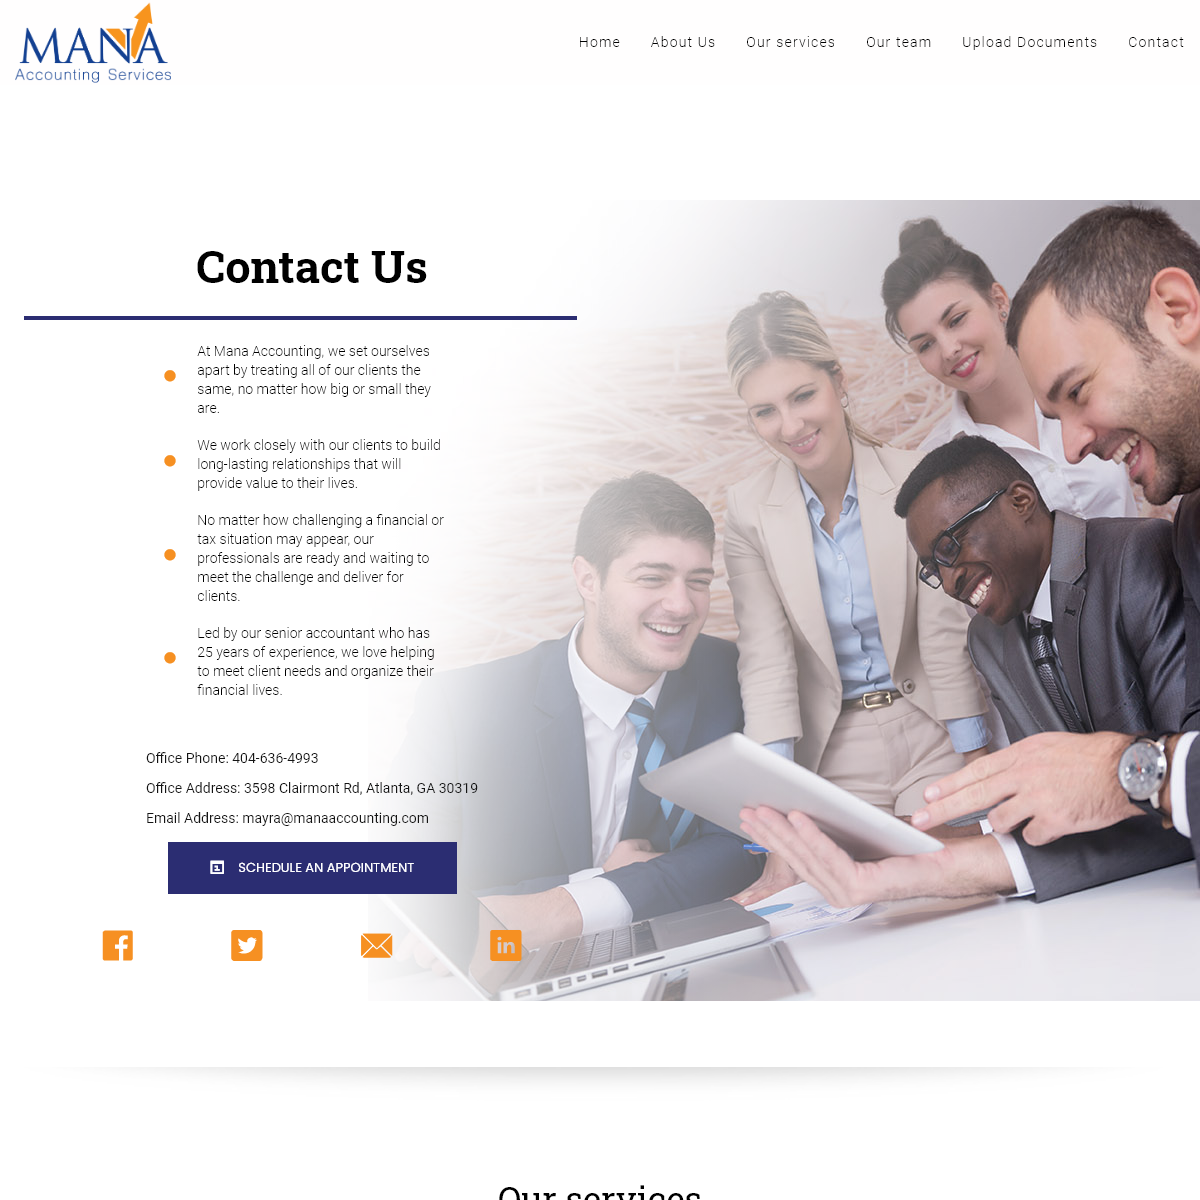 Mana Accounting – At Mana Accounting, we set ourselves apart by treating all of our clients the same, no matter how big or sma